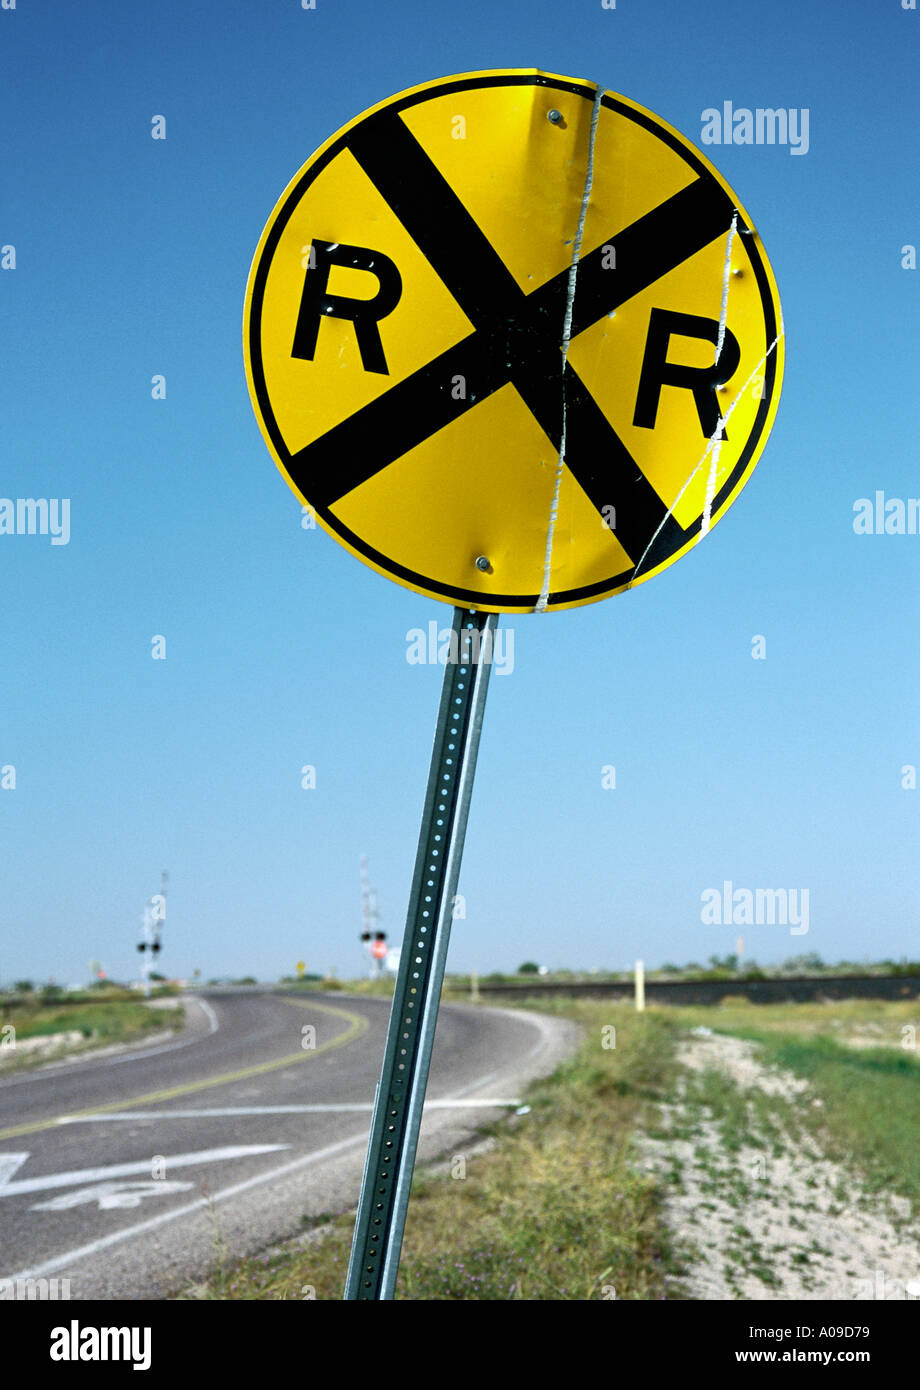 Circular railroad crossing road sign with railway tracks in